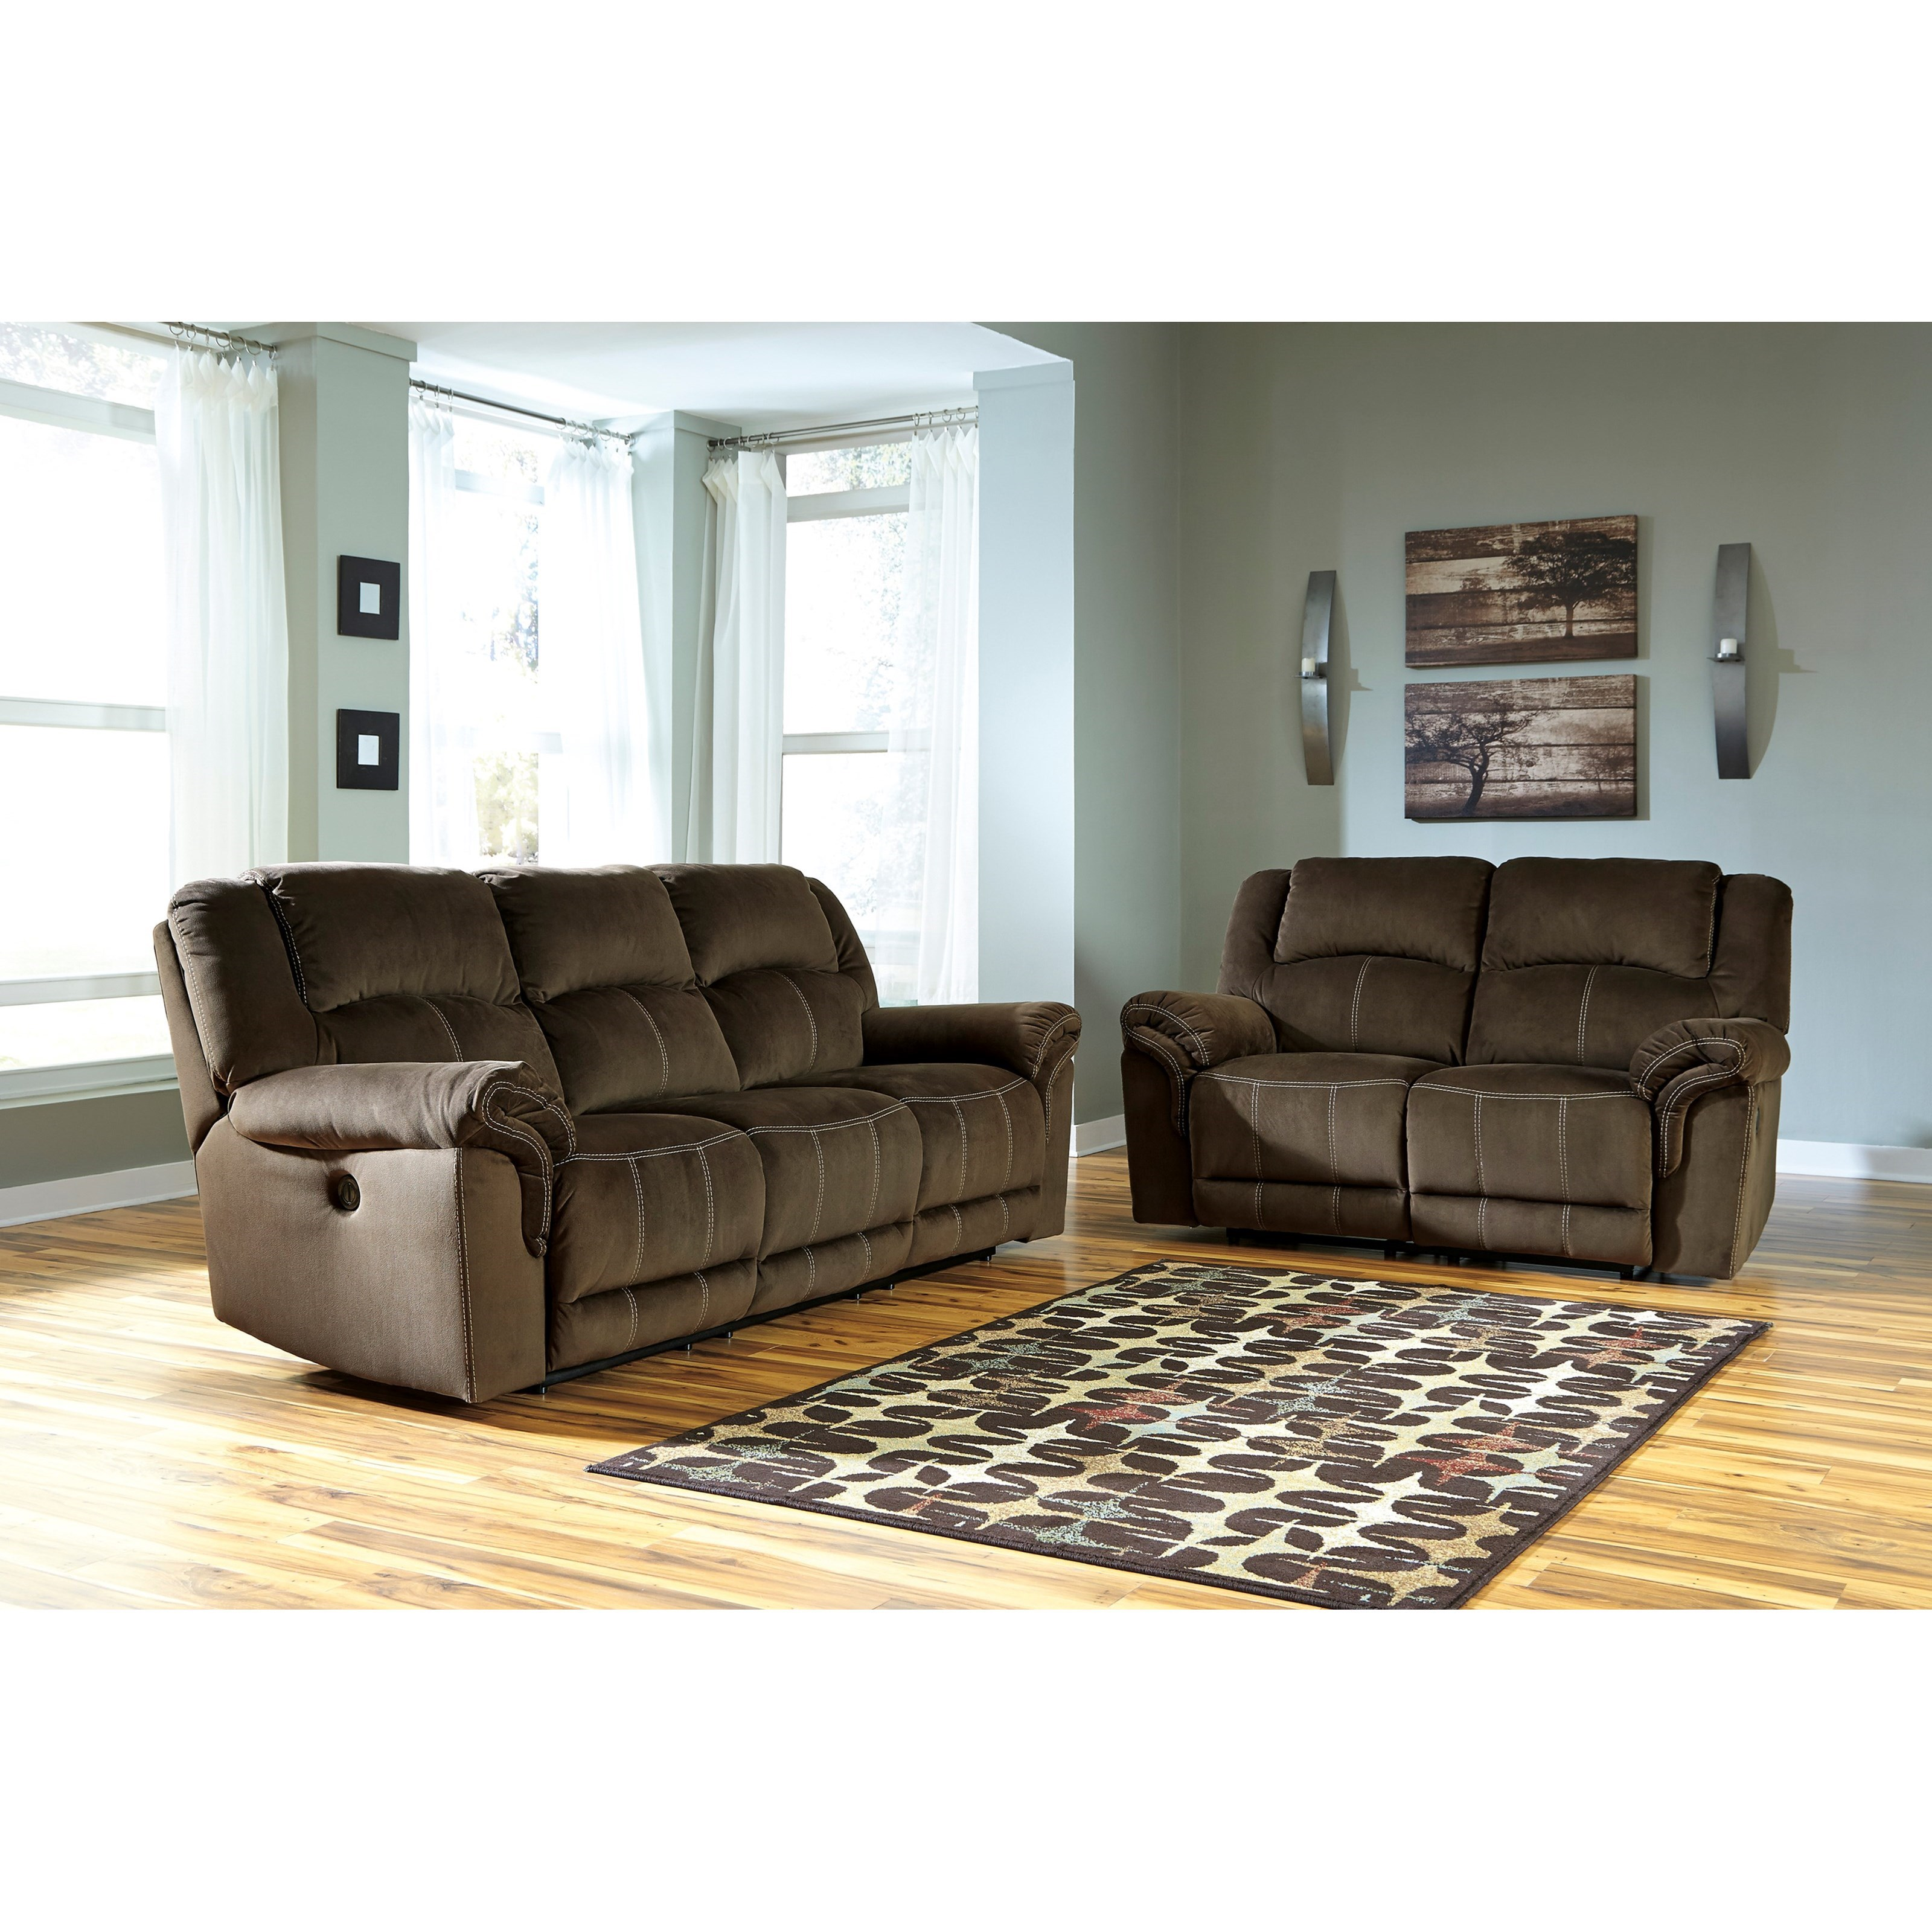 Ashley Signature Design Quinnlyn Reclining Living Room Group - Item Number: 95701 Living Room Group 2